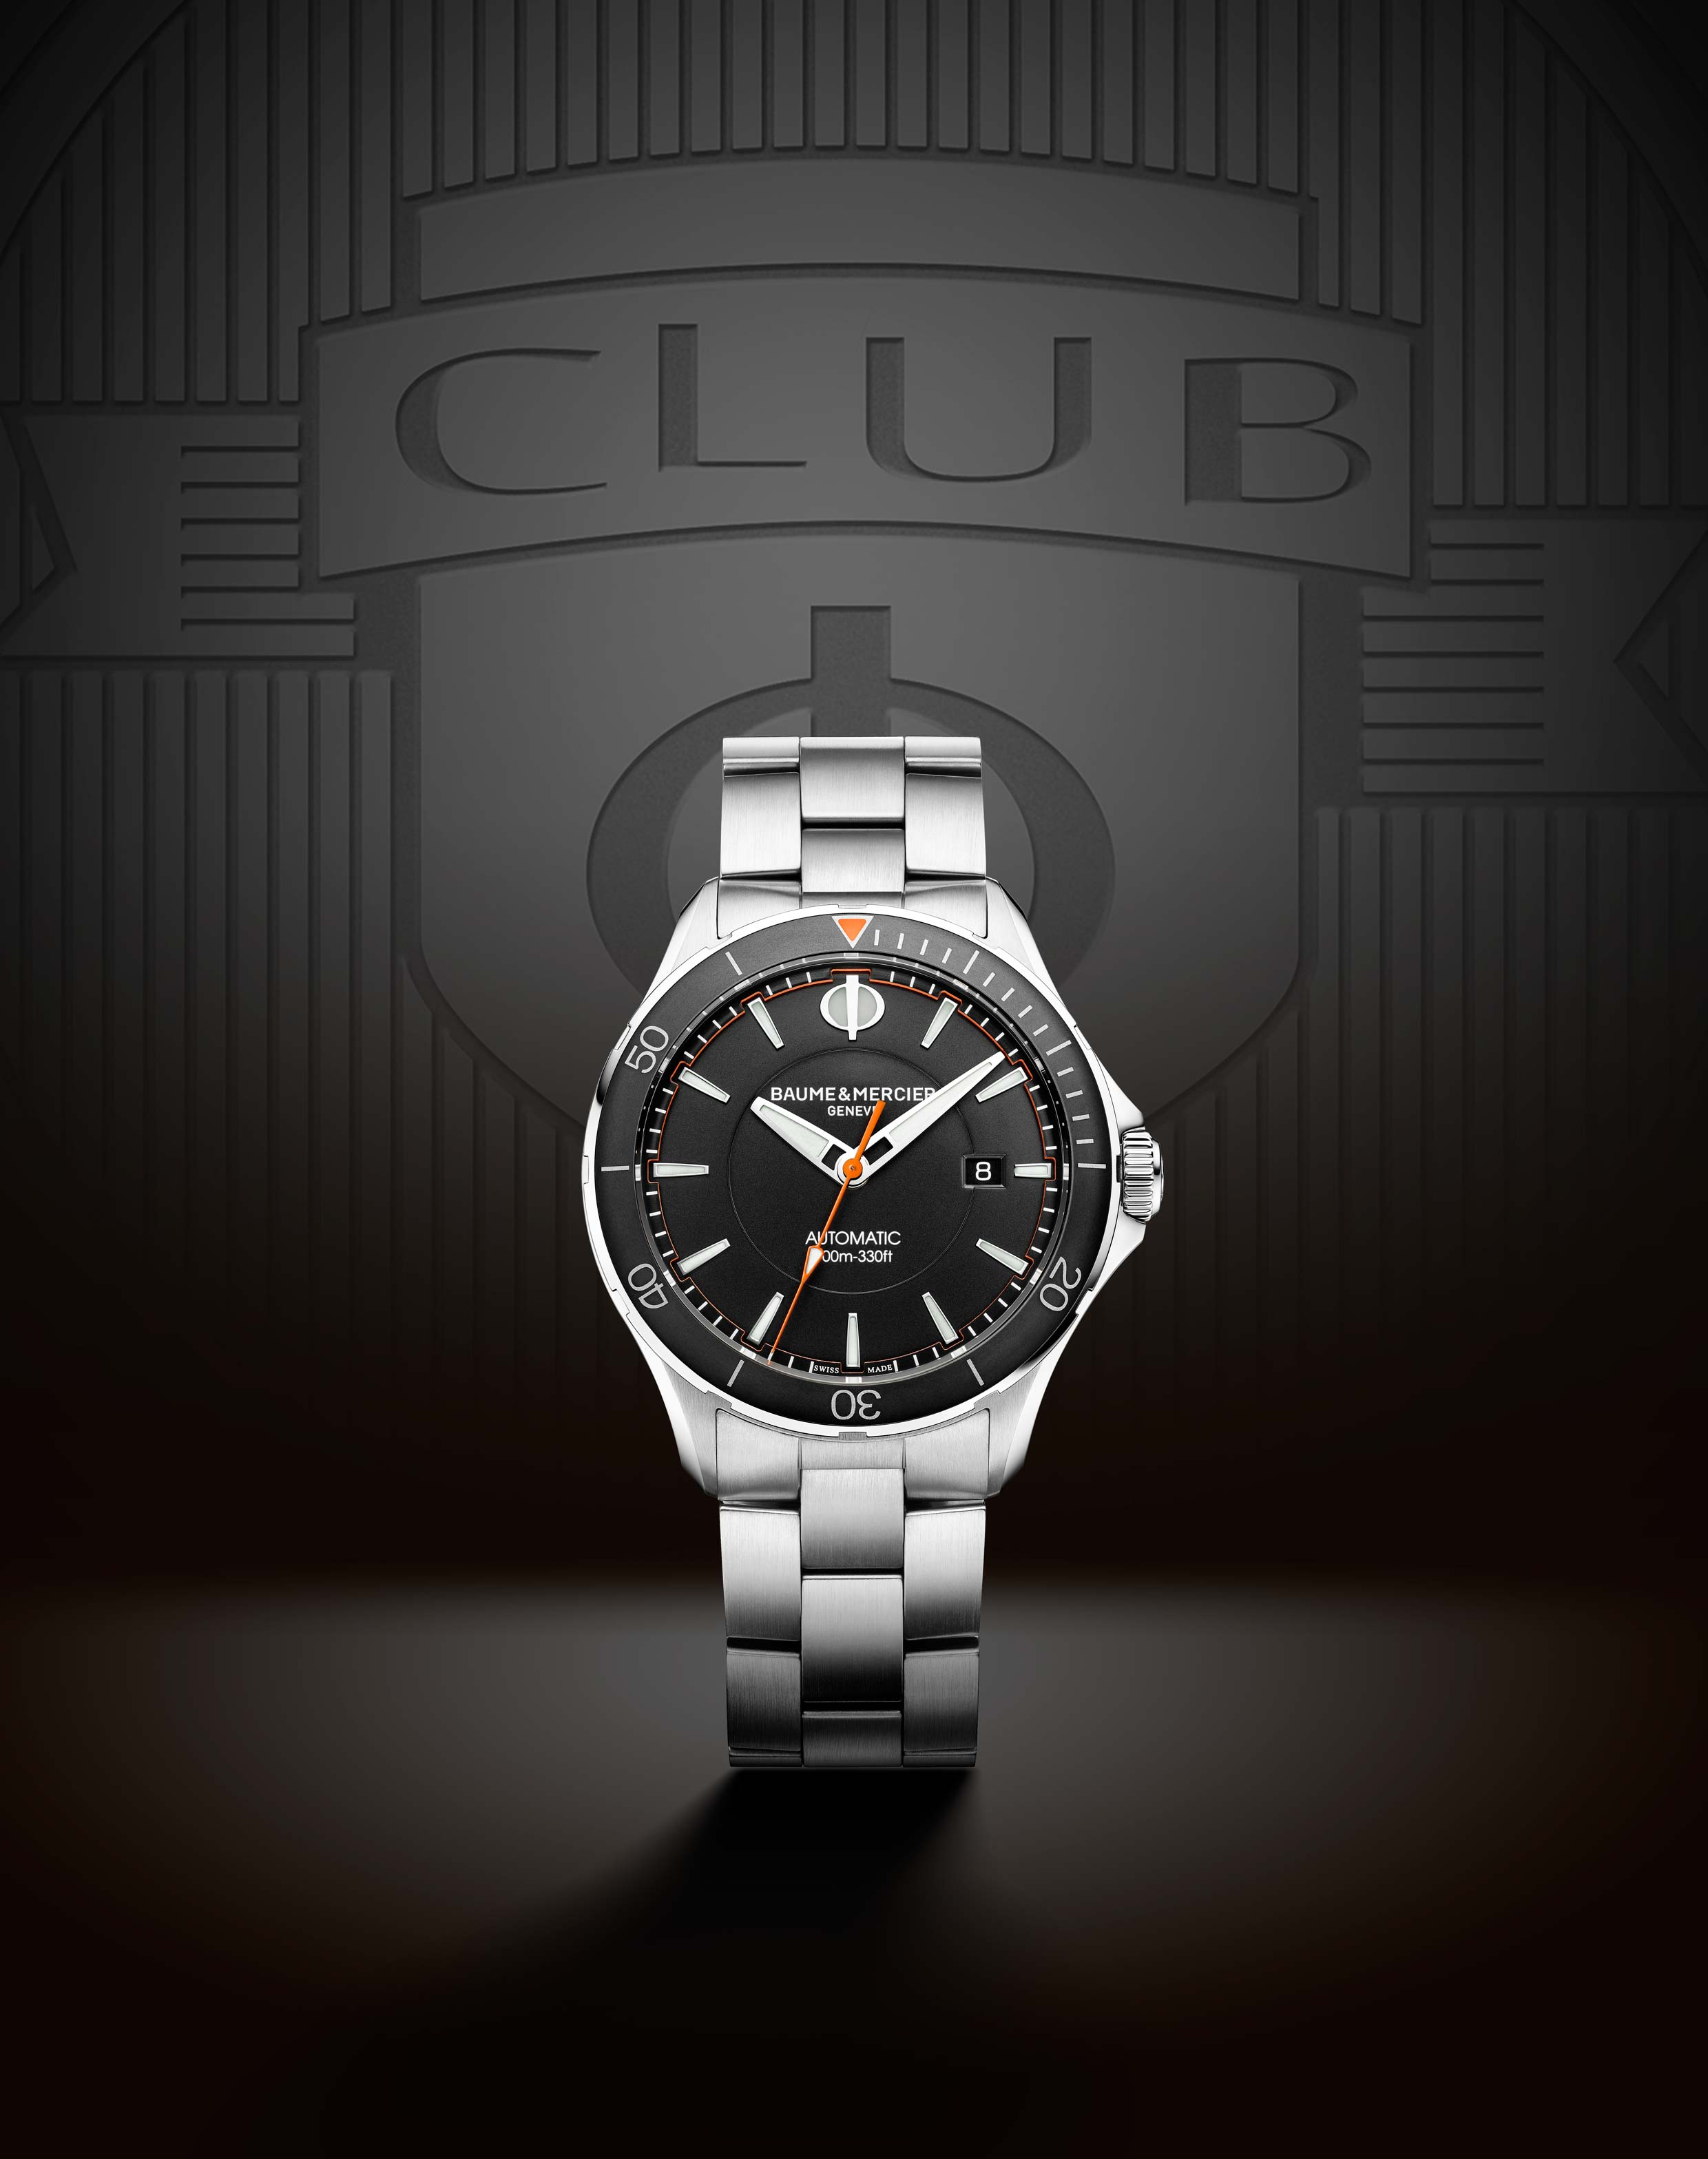 Baume & Mercier Clifton Club Collection comes in bracelet or strap versions.